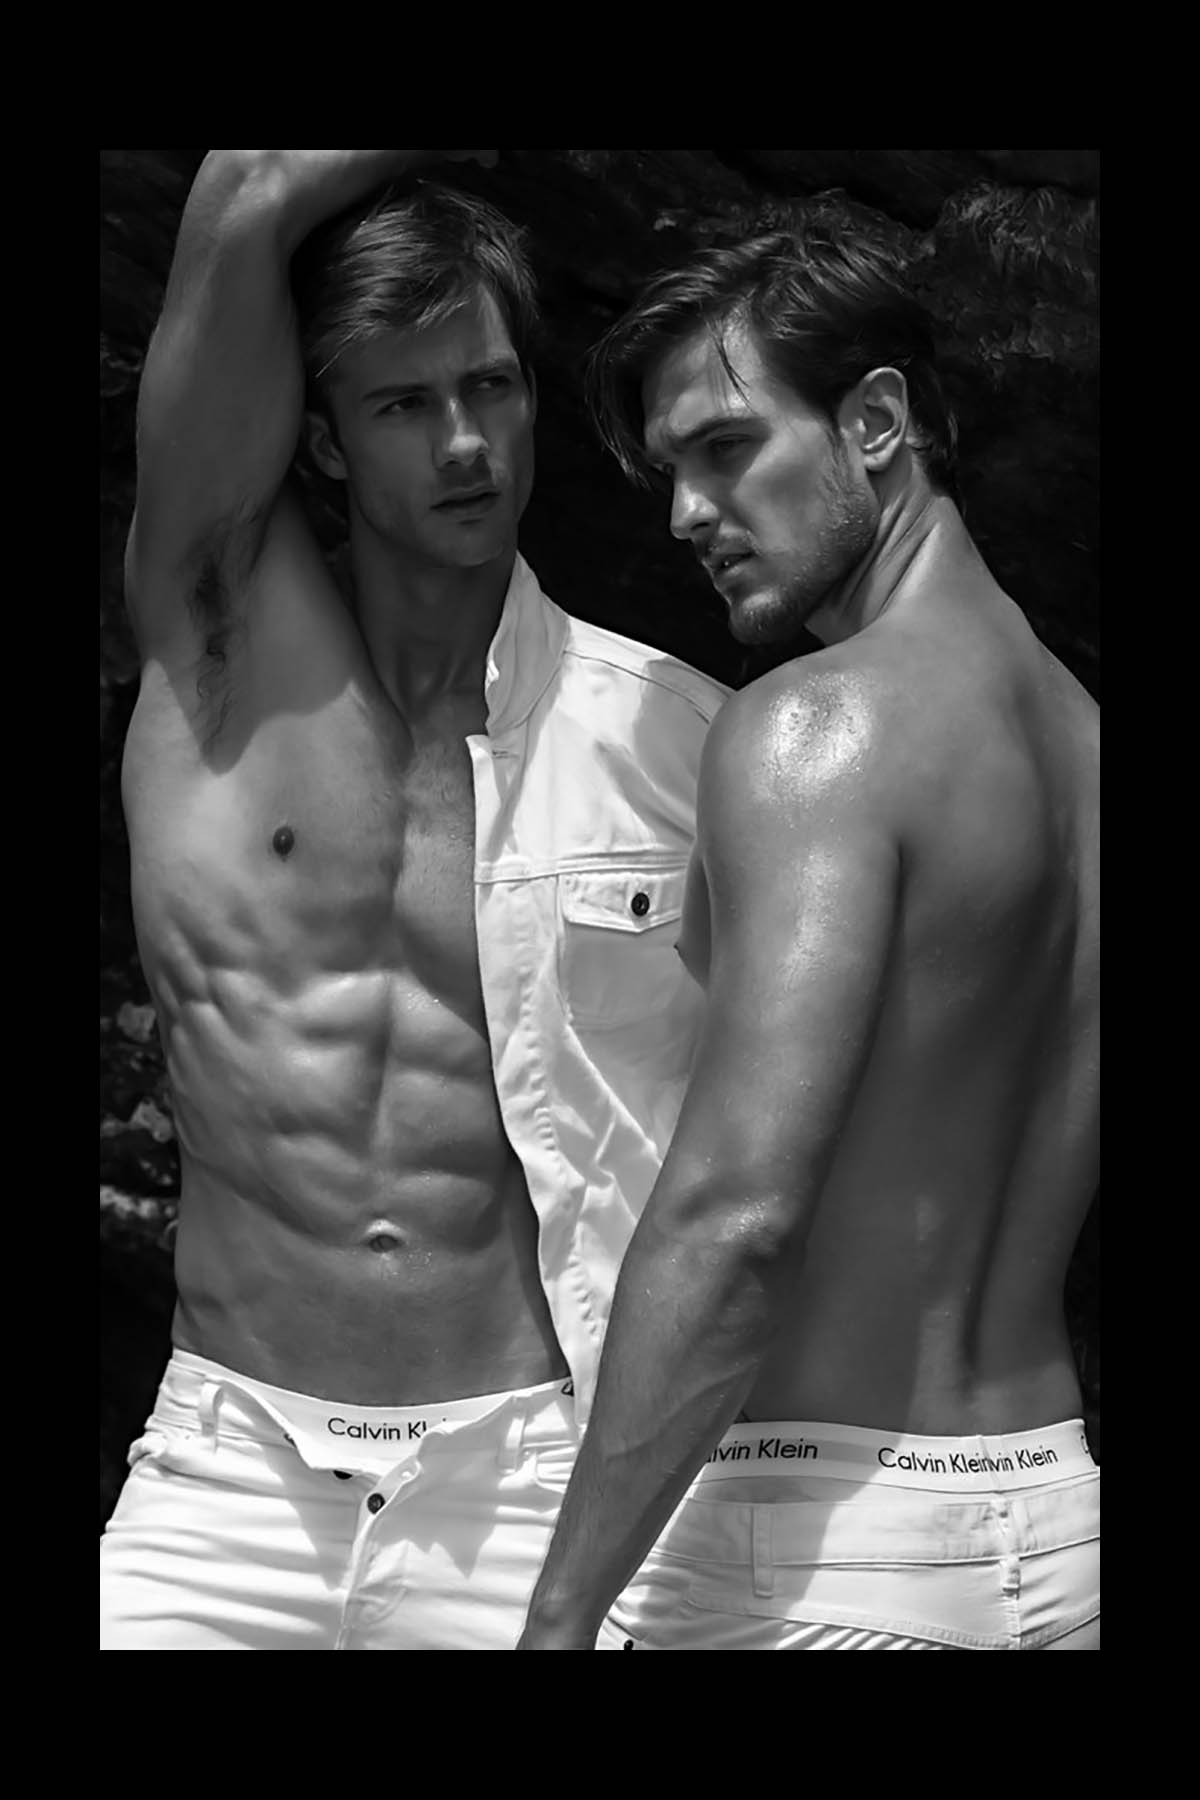 Gilberto Fritsch and João Fernando Mahl by Alexis Dela Cruz for Brazilian Male Model